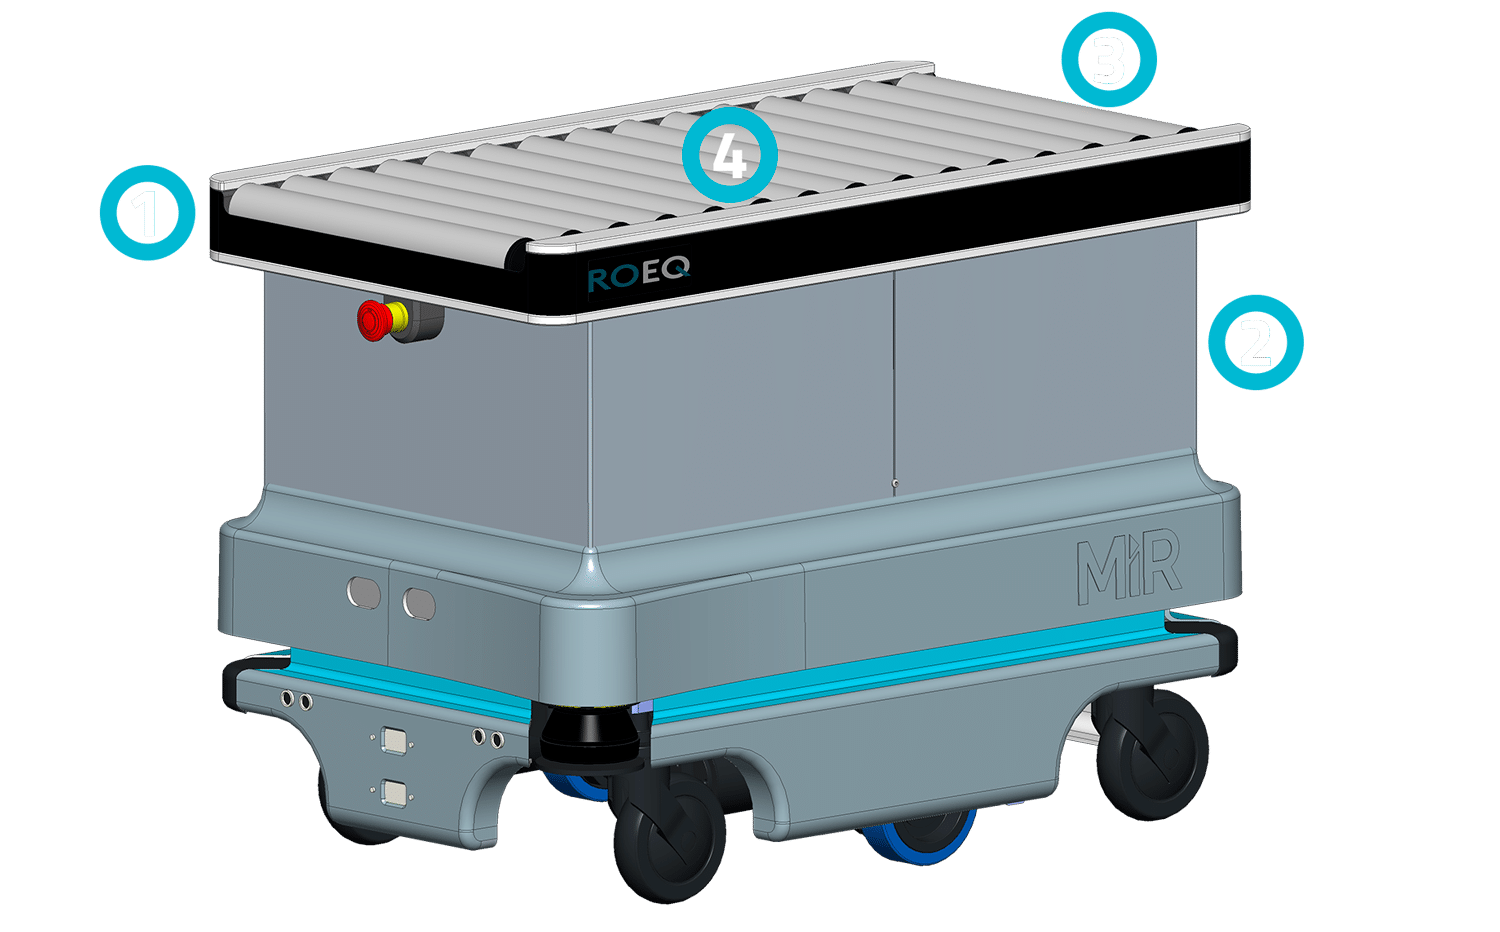 IRC100 from ROEQ Robotic Equipment for MiR100 and Mir200 from Mobile Industrial Robots